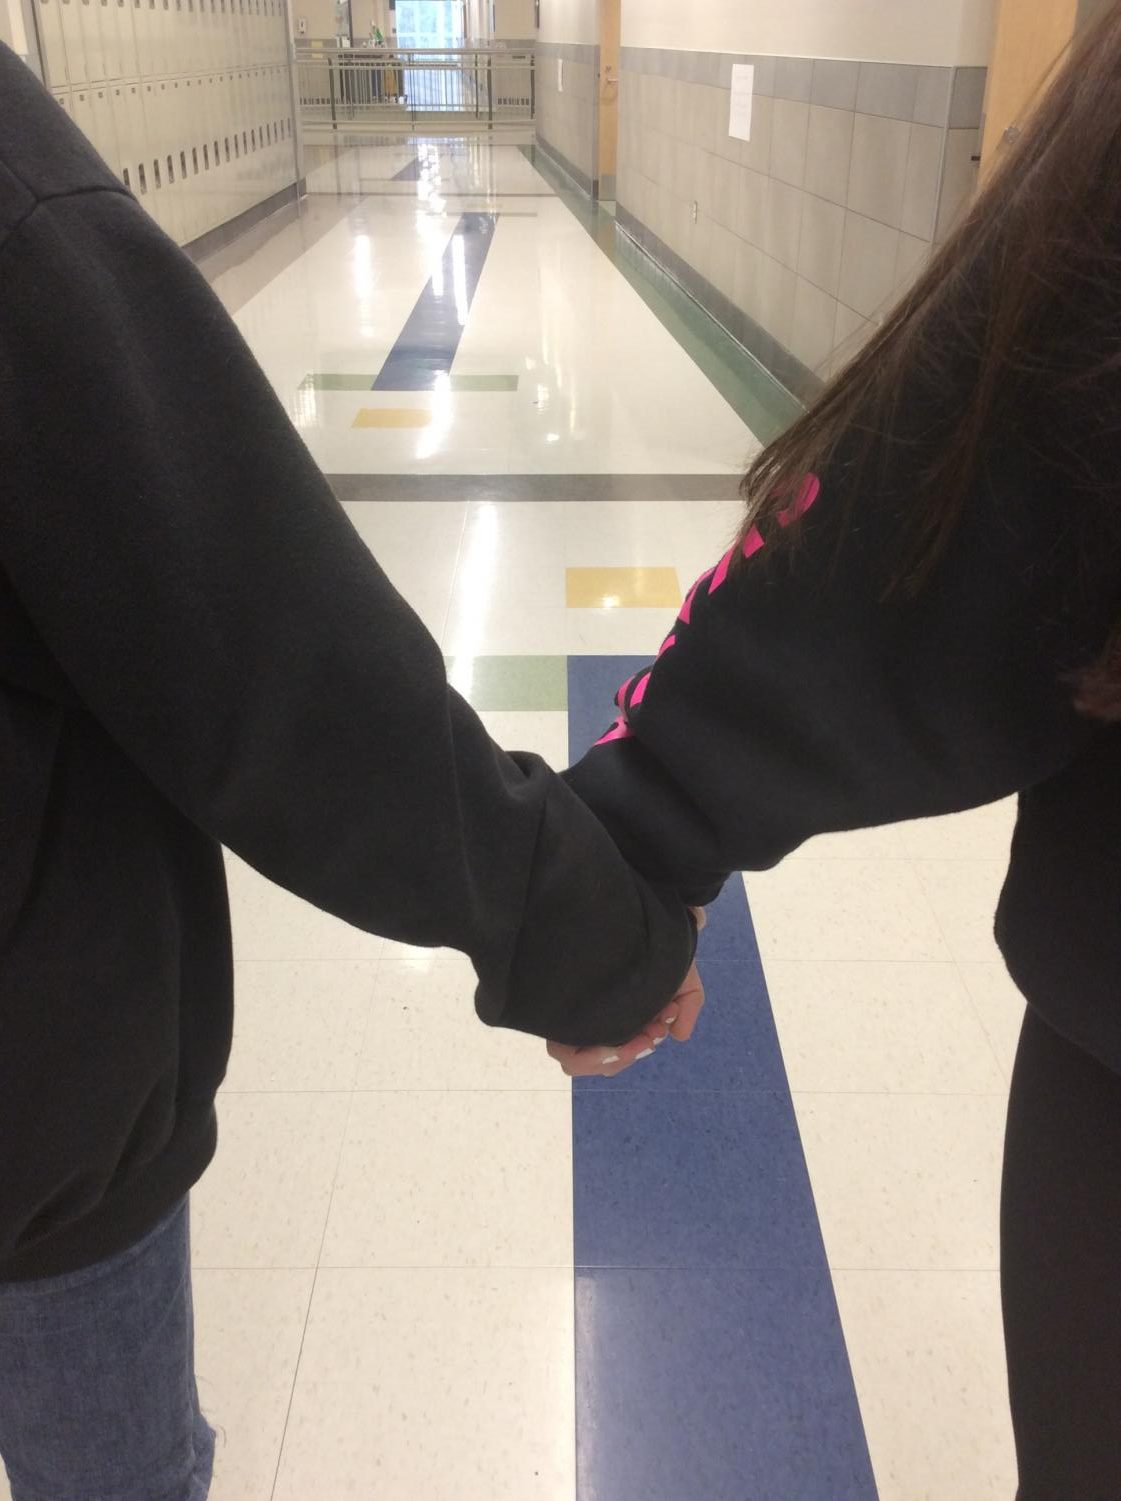 Two students at Abington High School hold hands in the hallway on Friday, December 6, 2019.